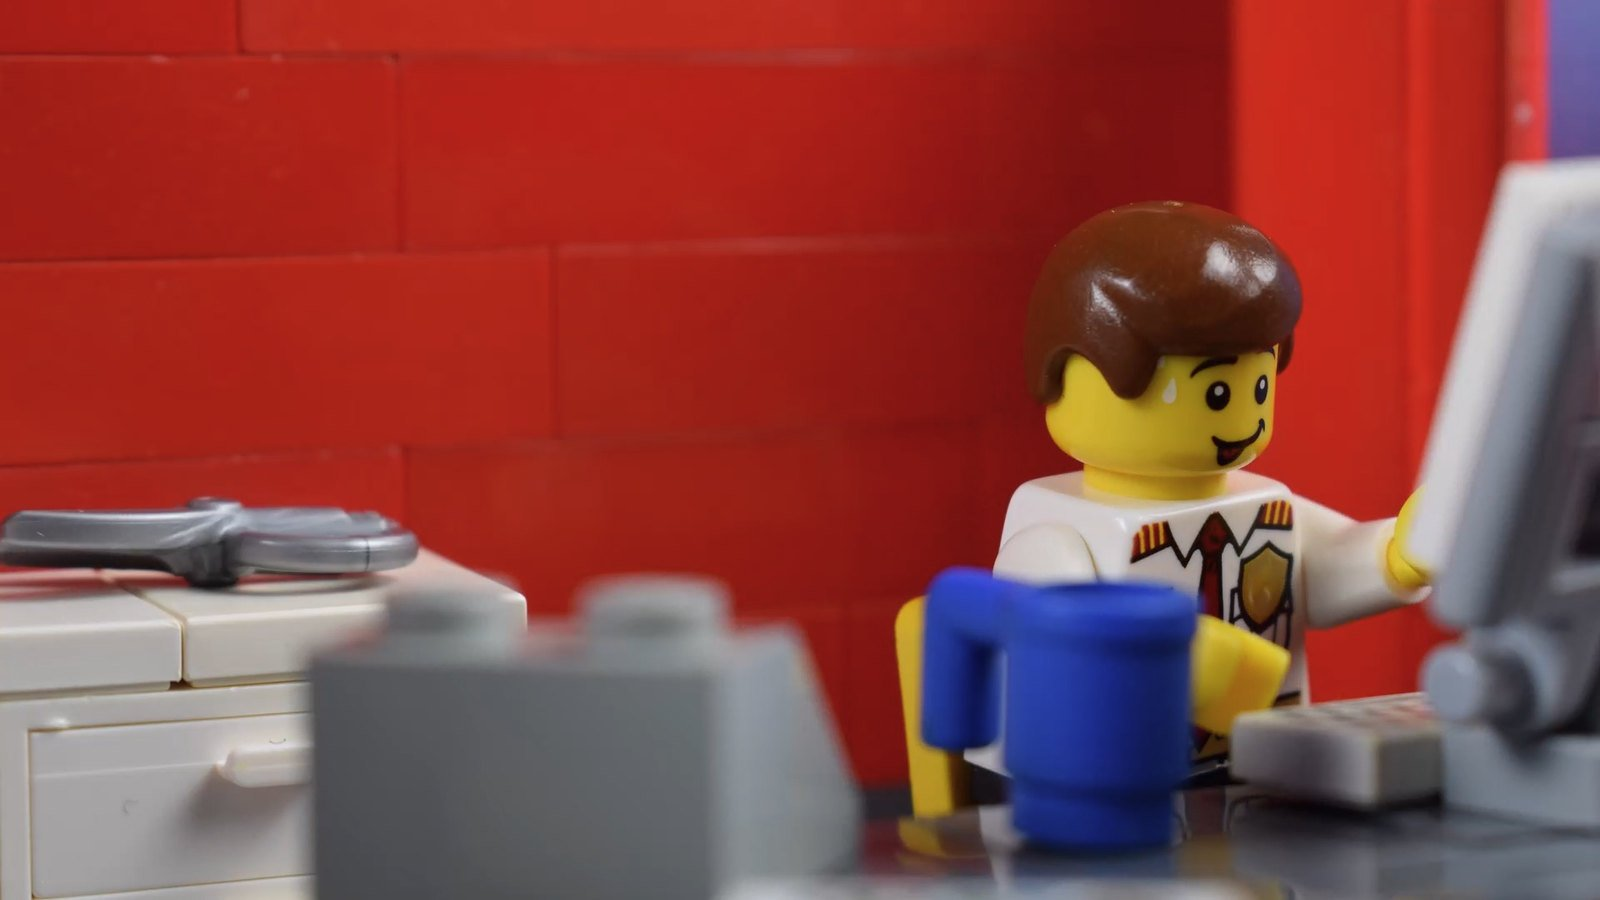 This LEGO is stoked his workplace is set up to his liking.